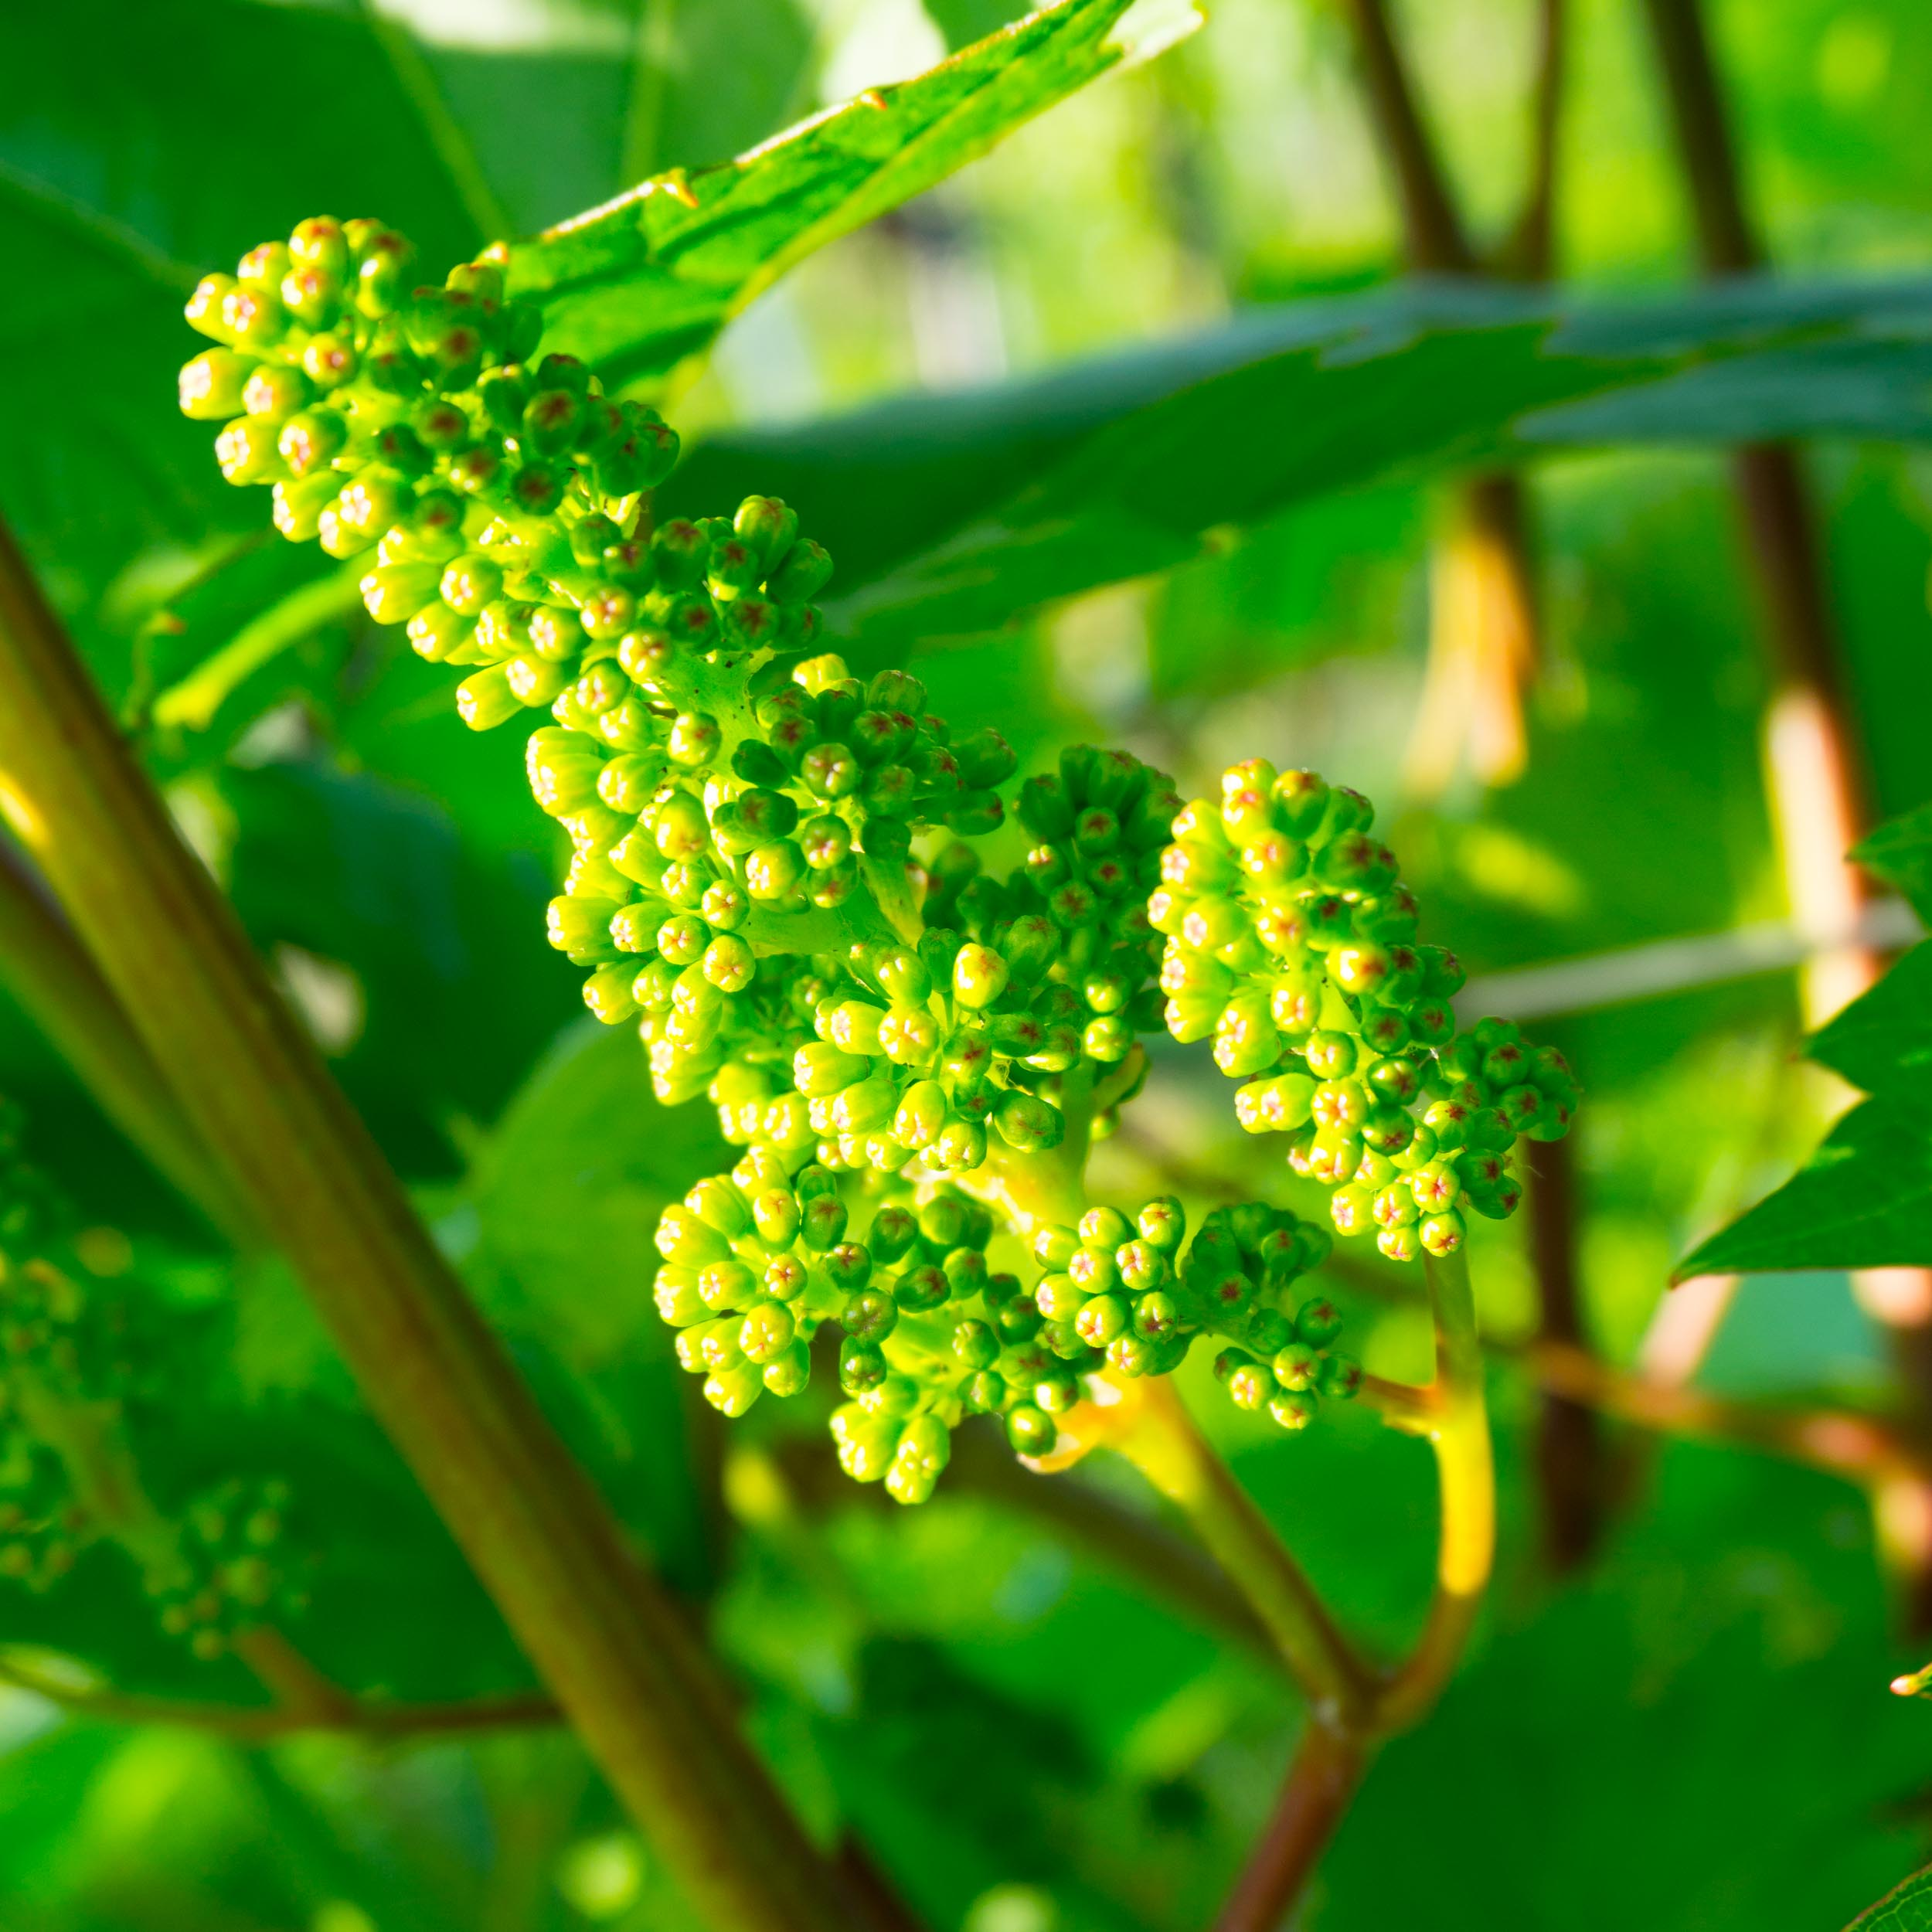 Meopham-Valley-Vineyard-Grapes-Vines-Flowering-4